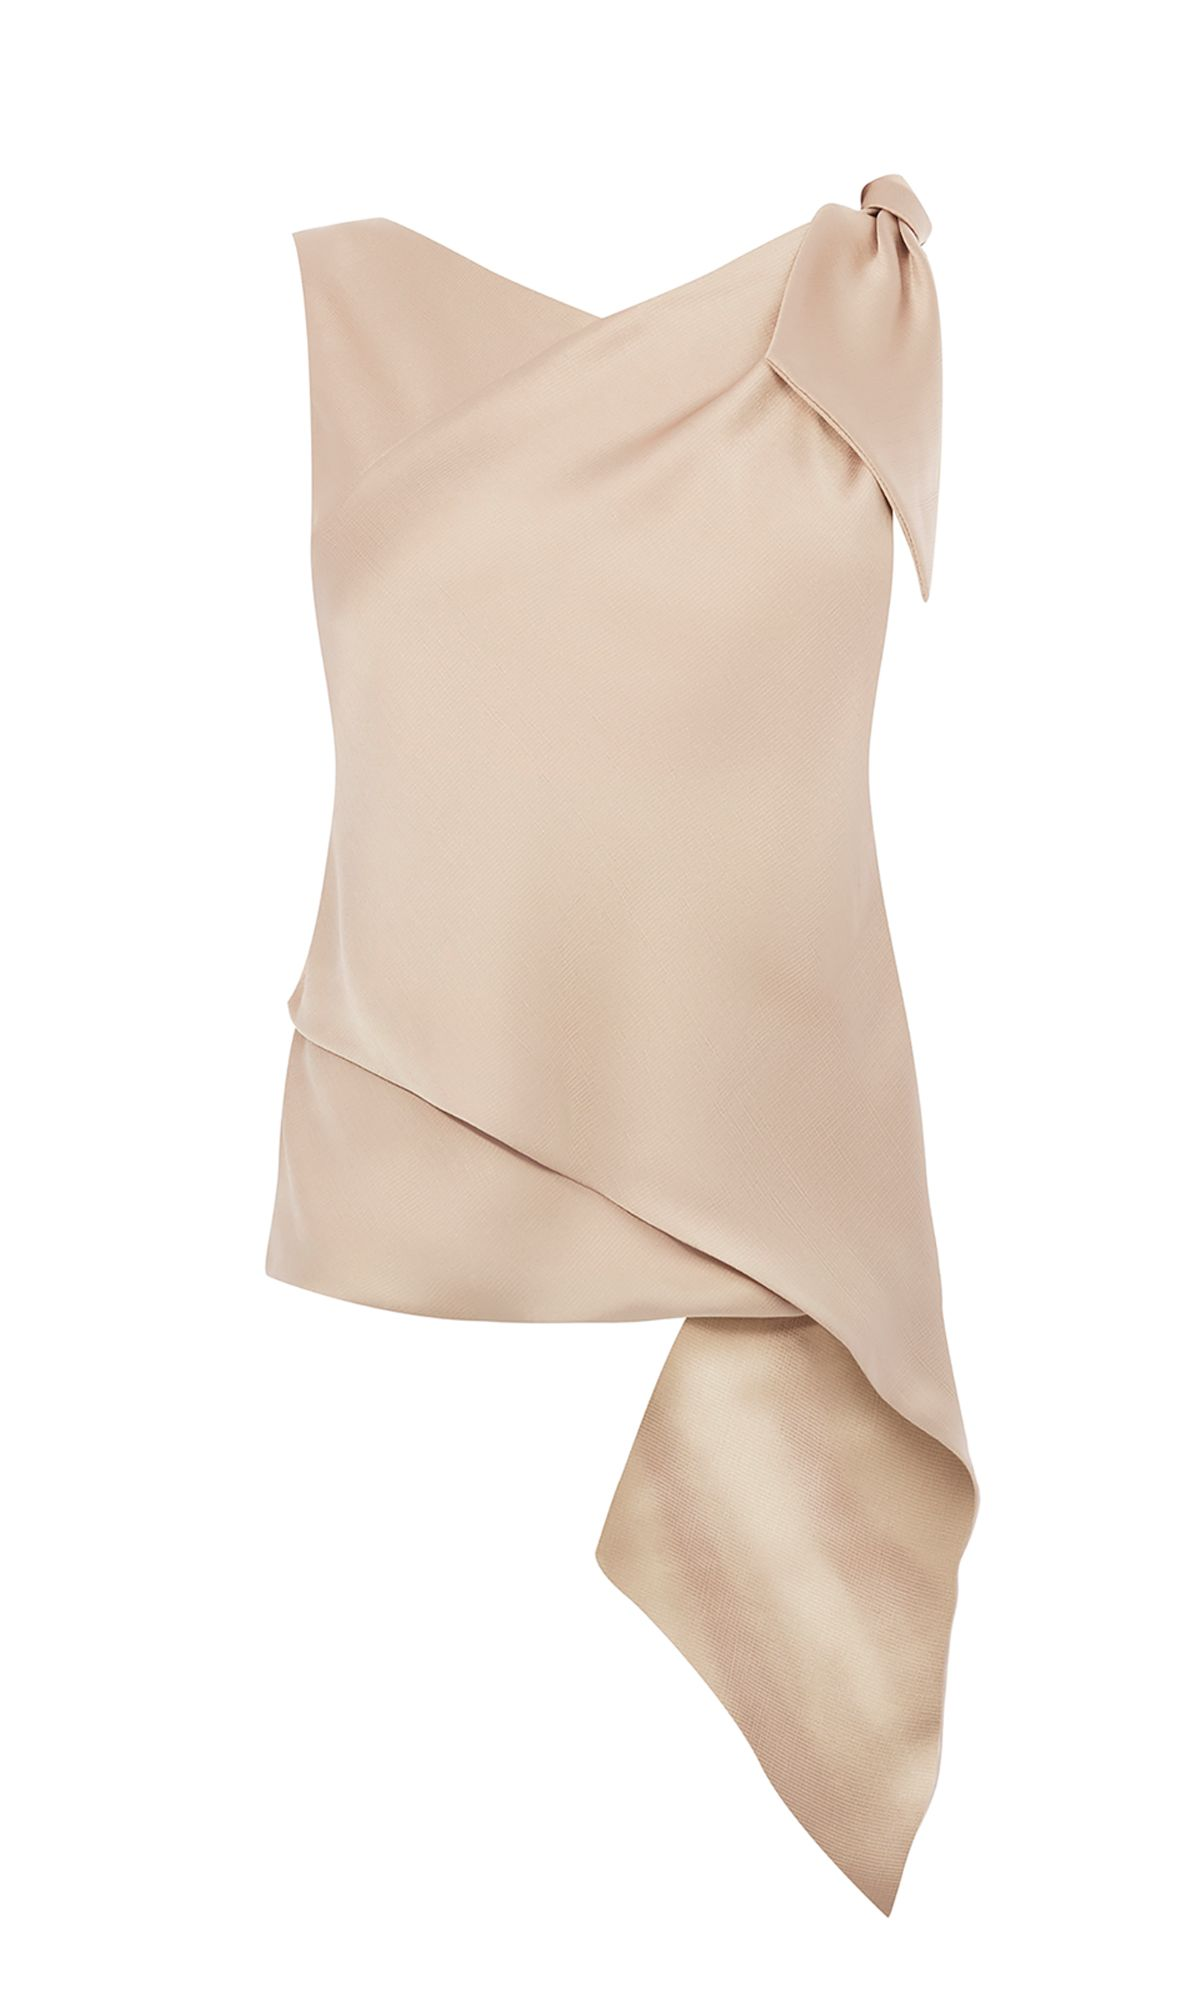 Karen Millen Knot Drape Asymmetric Top, Neutral